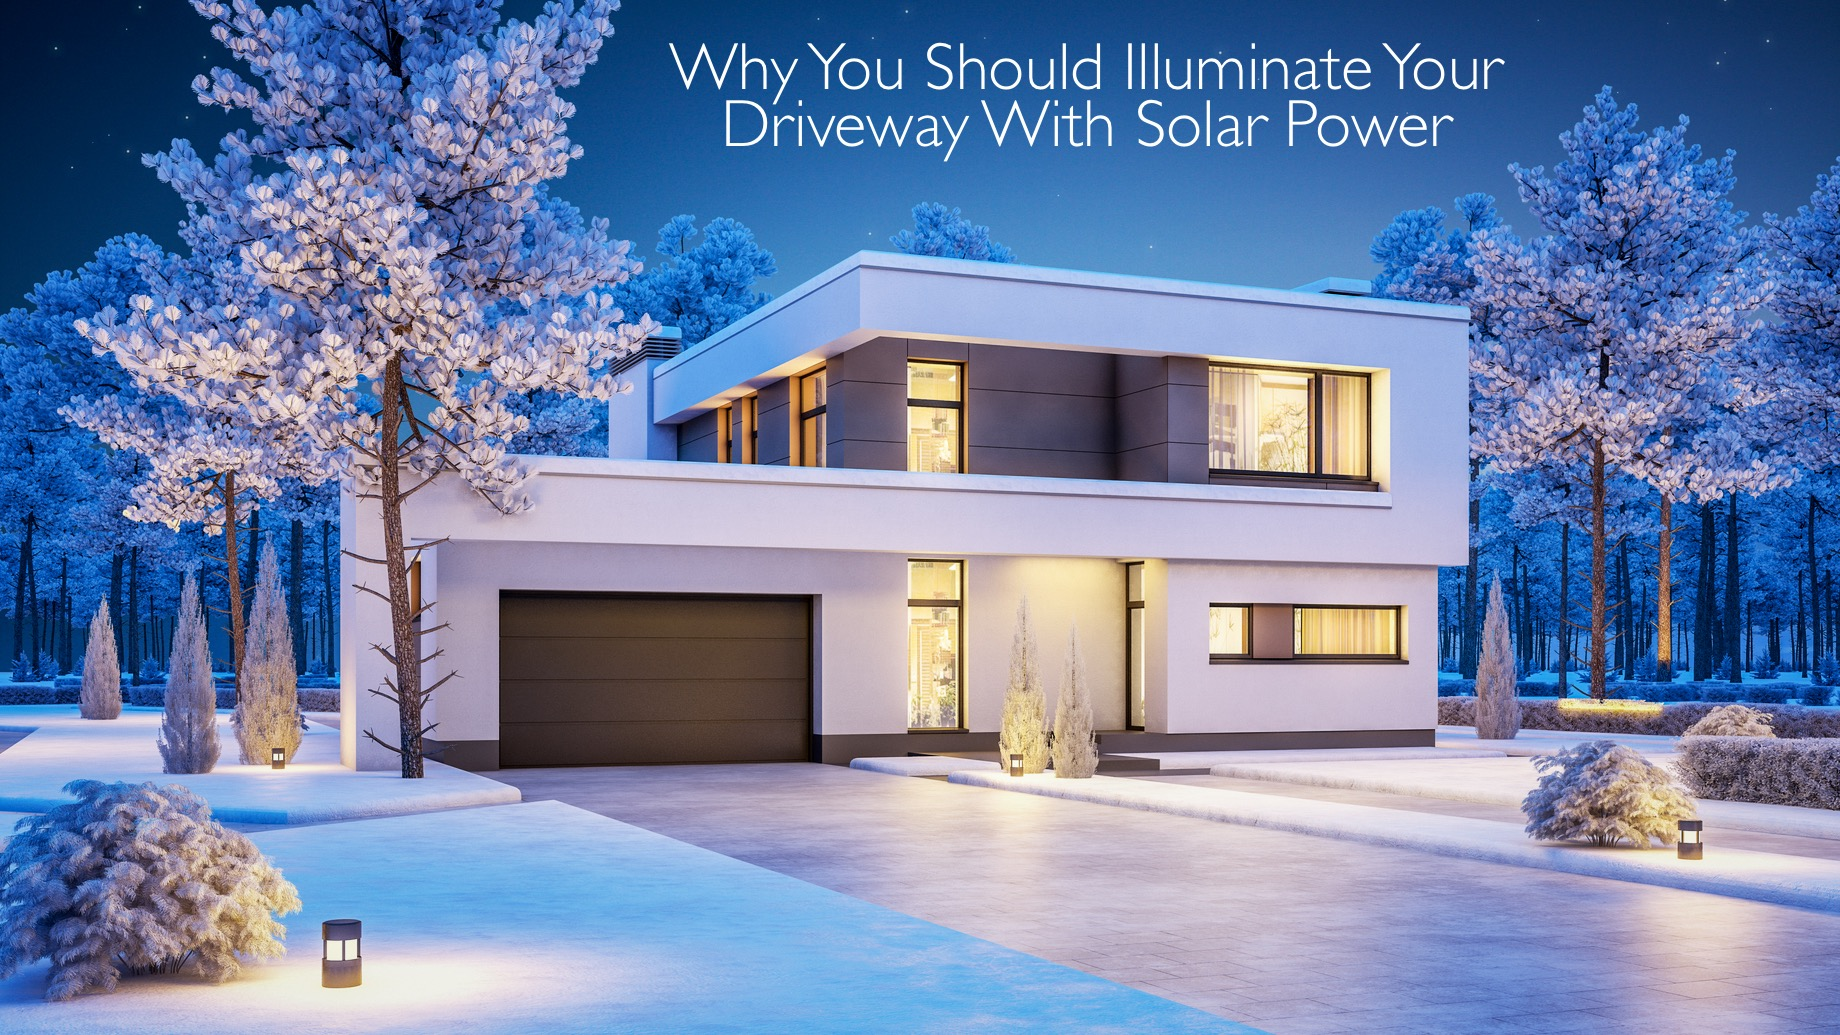 Why You Should Illuminate Your Driveway With Solar Power